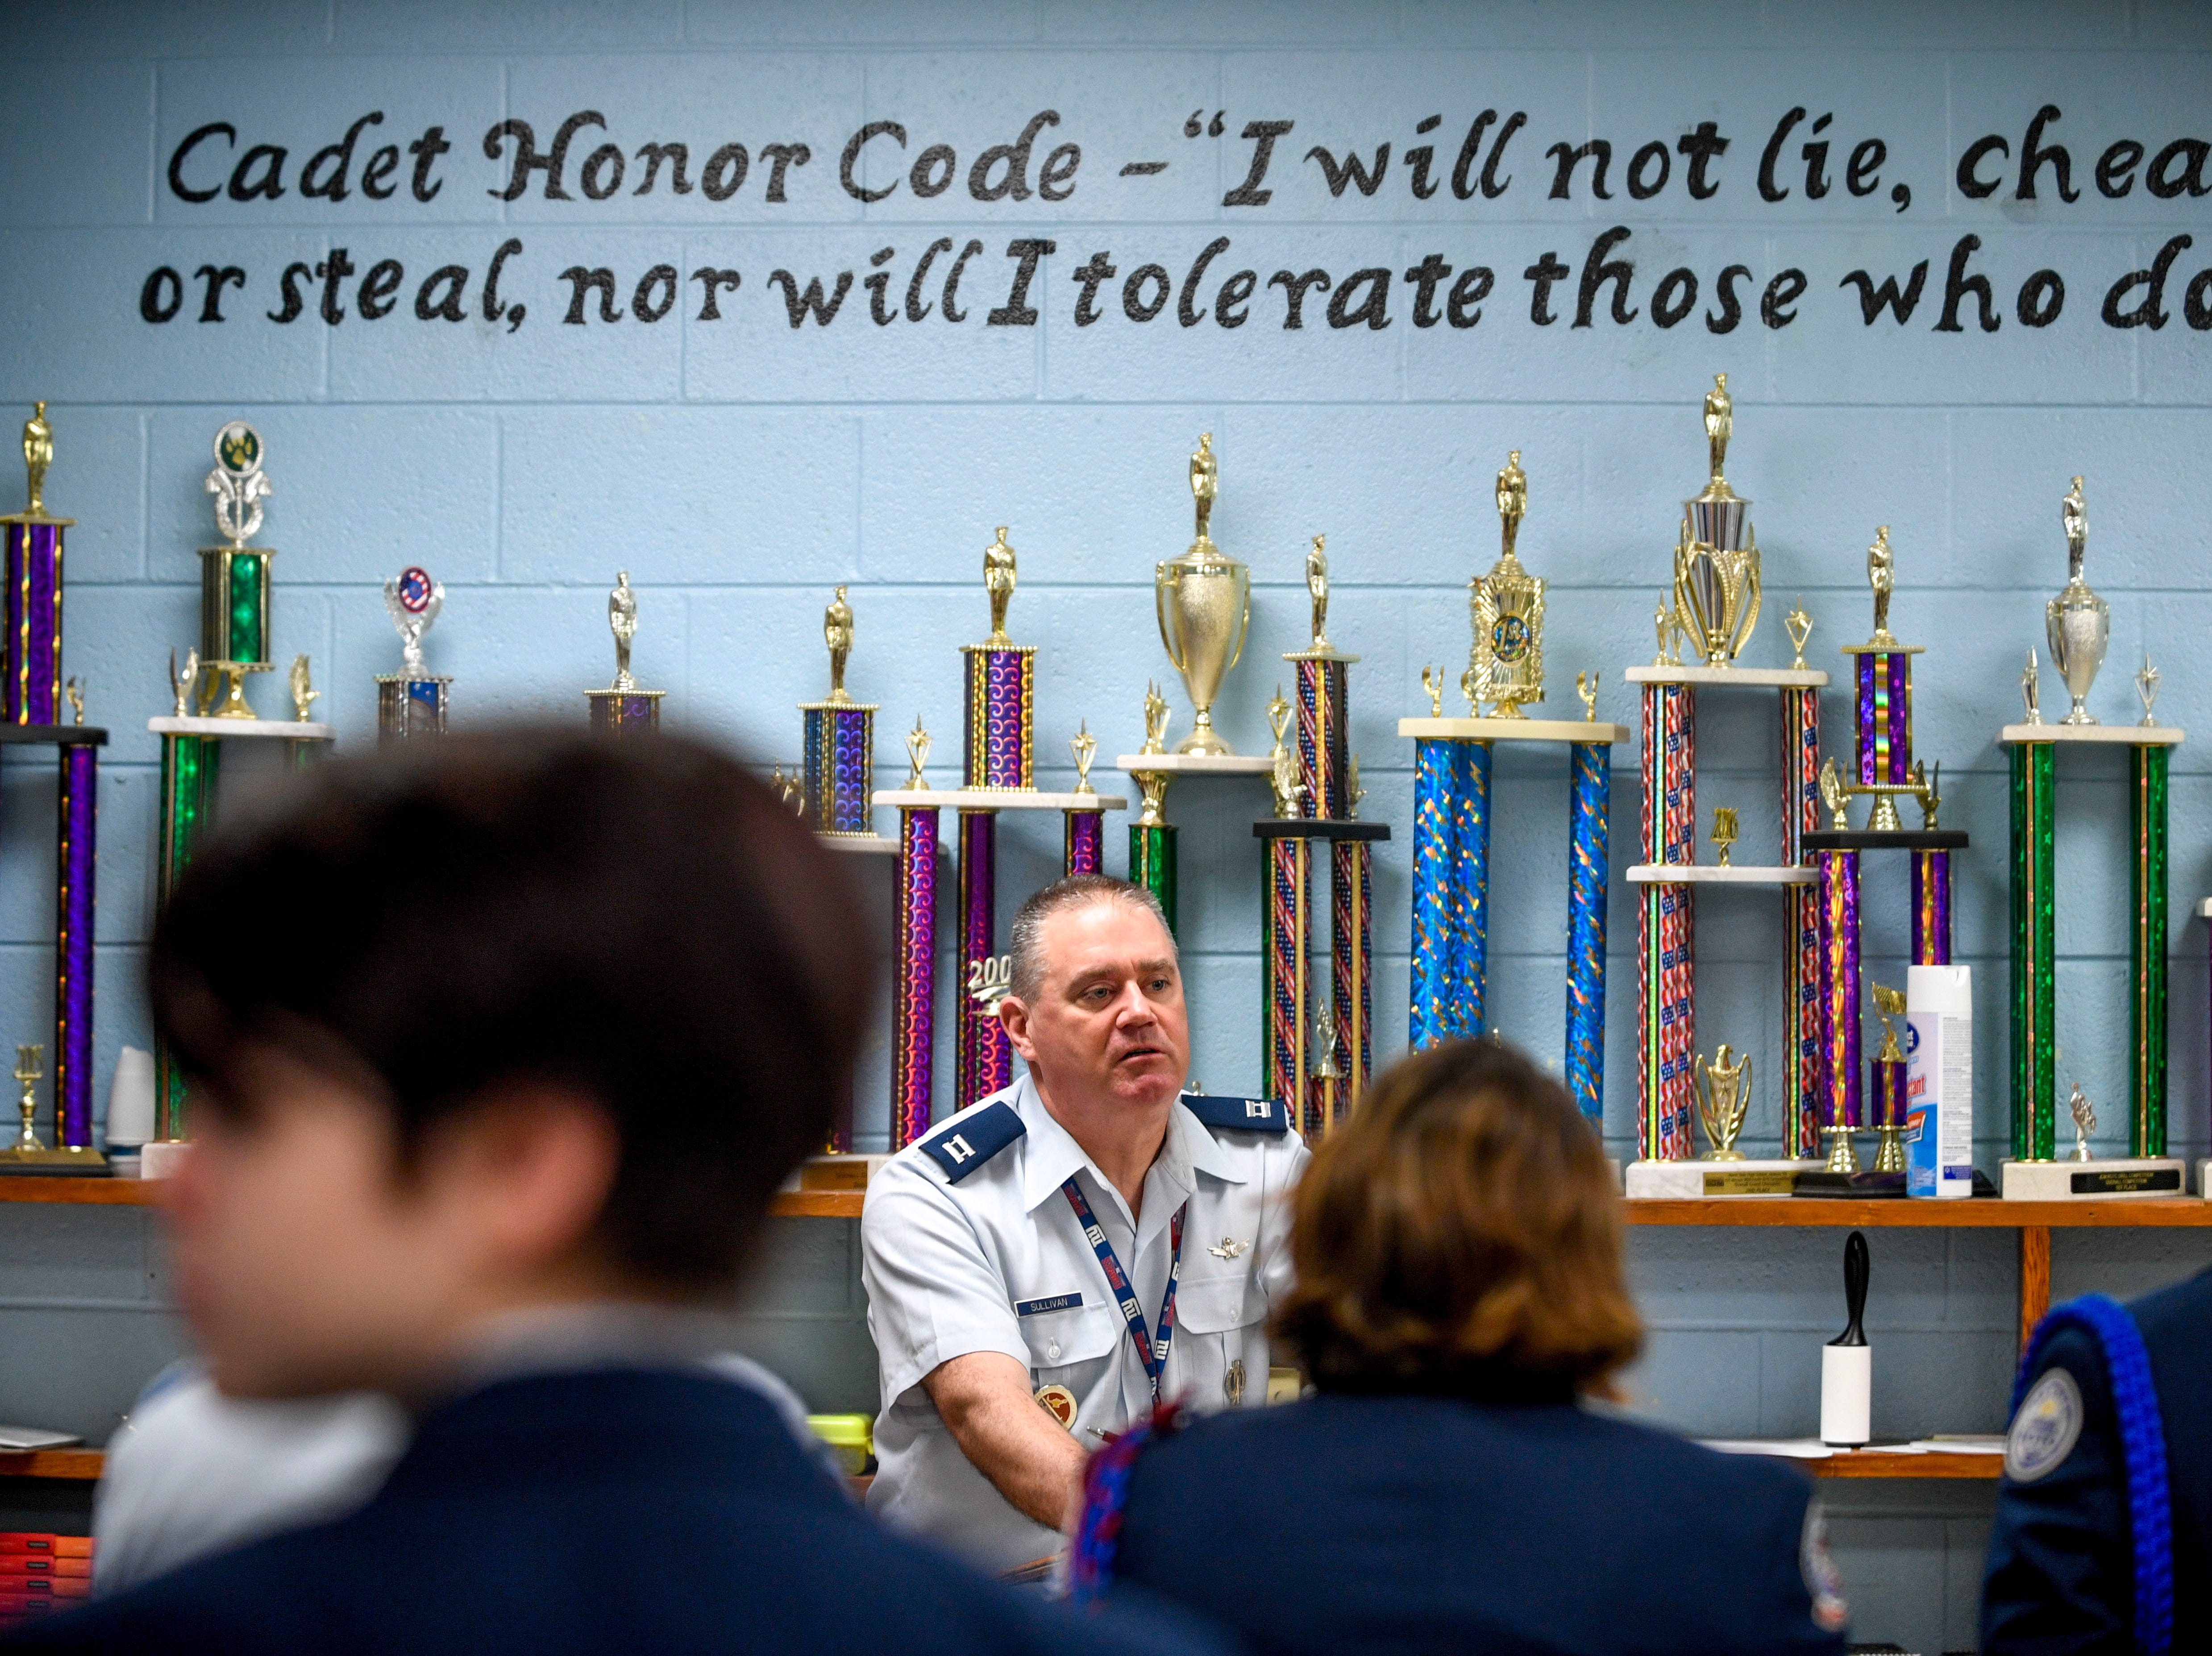 Captain Ken Sullivan speaks to students at the start of the period during ROTC class at Lexington High School in Lexington, Tenn., on Wednesday, Feb. 6, 2019.